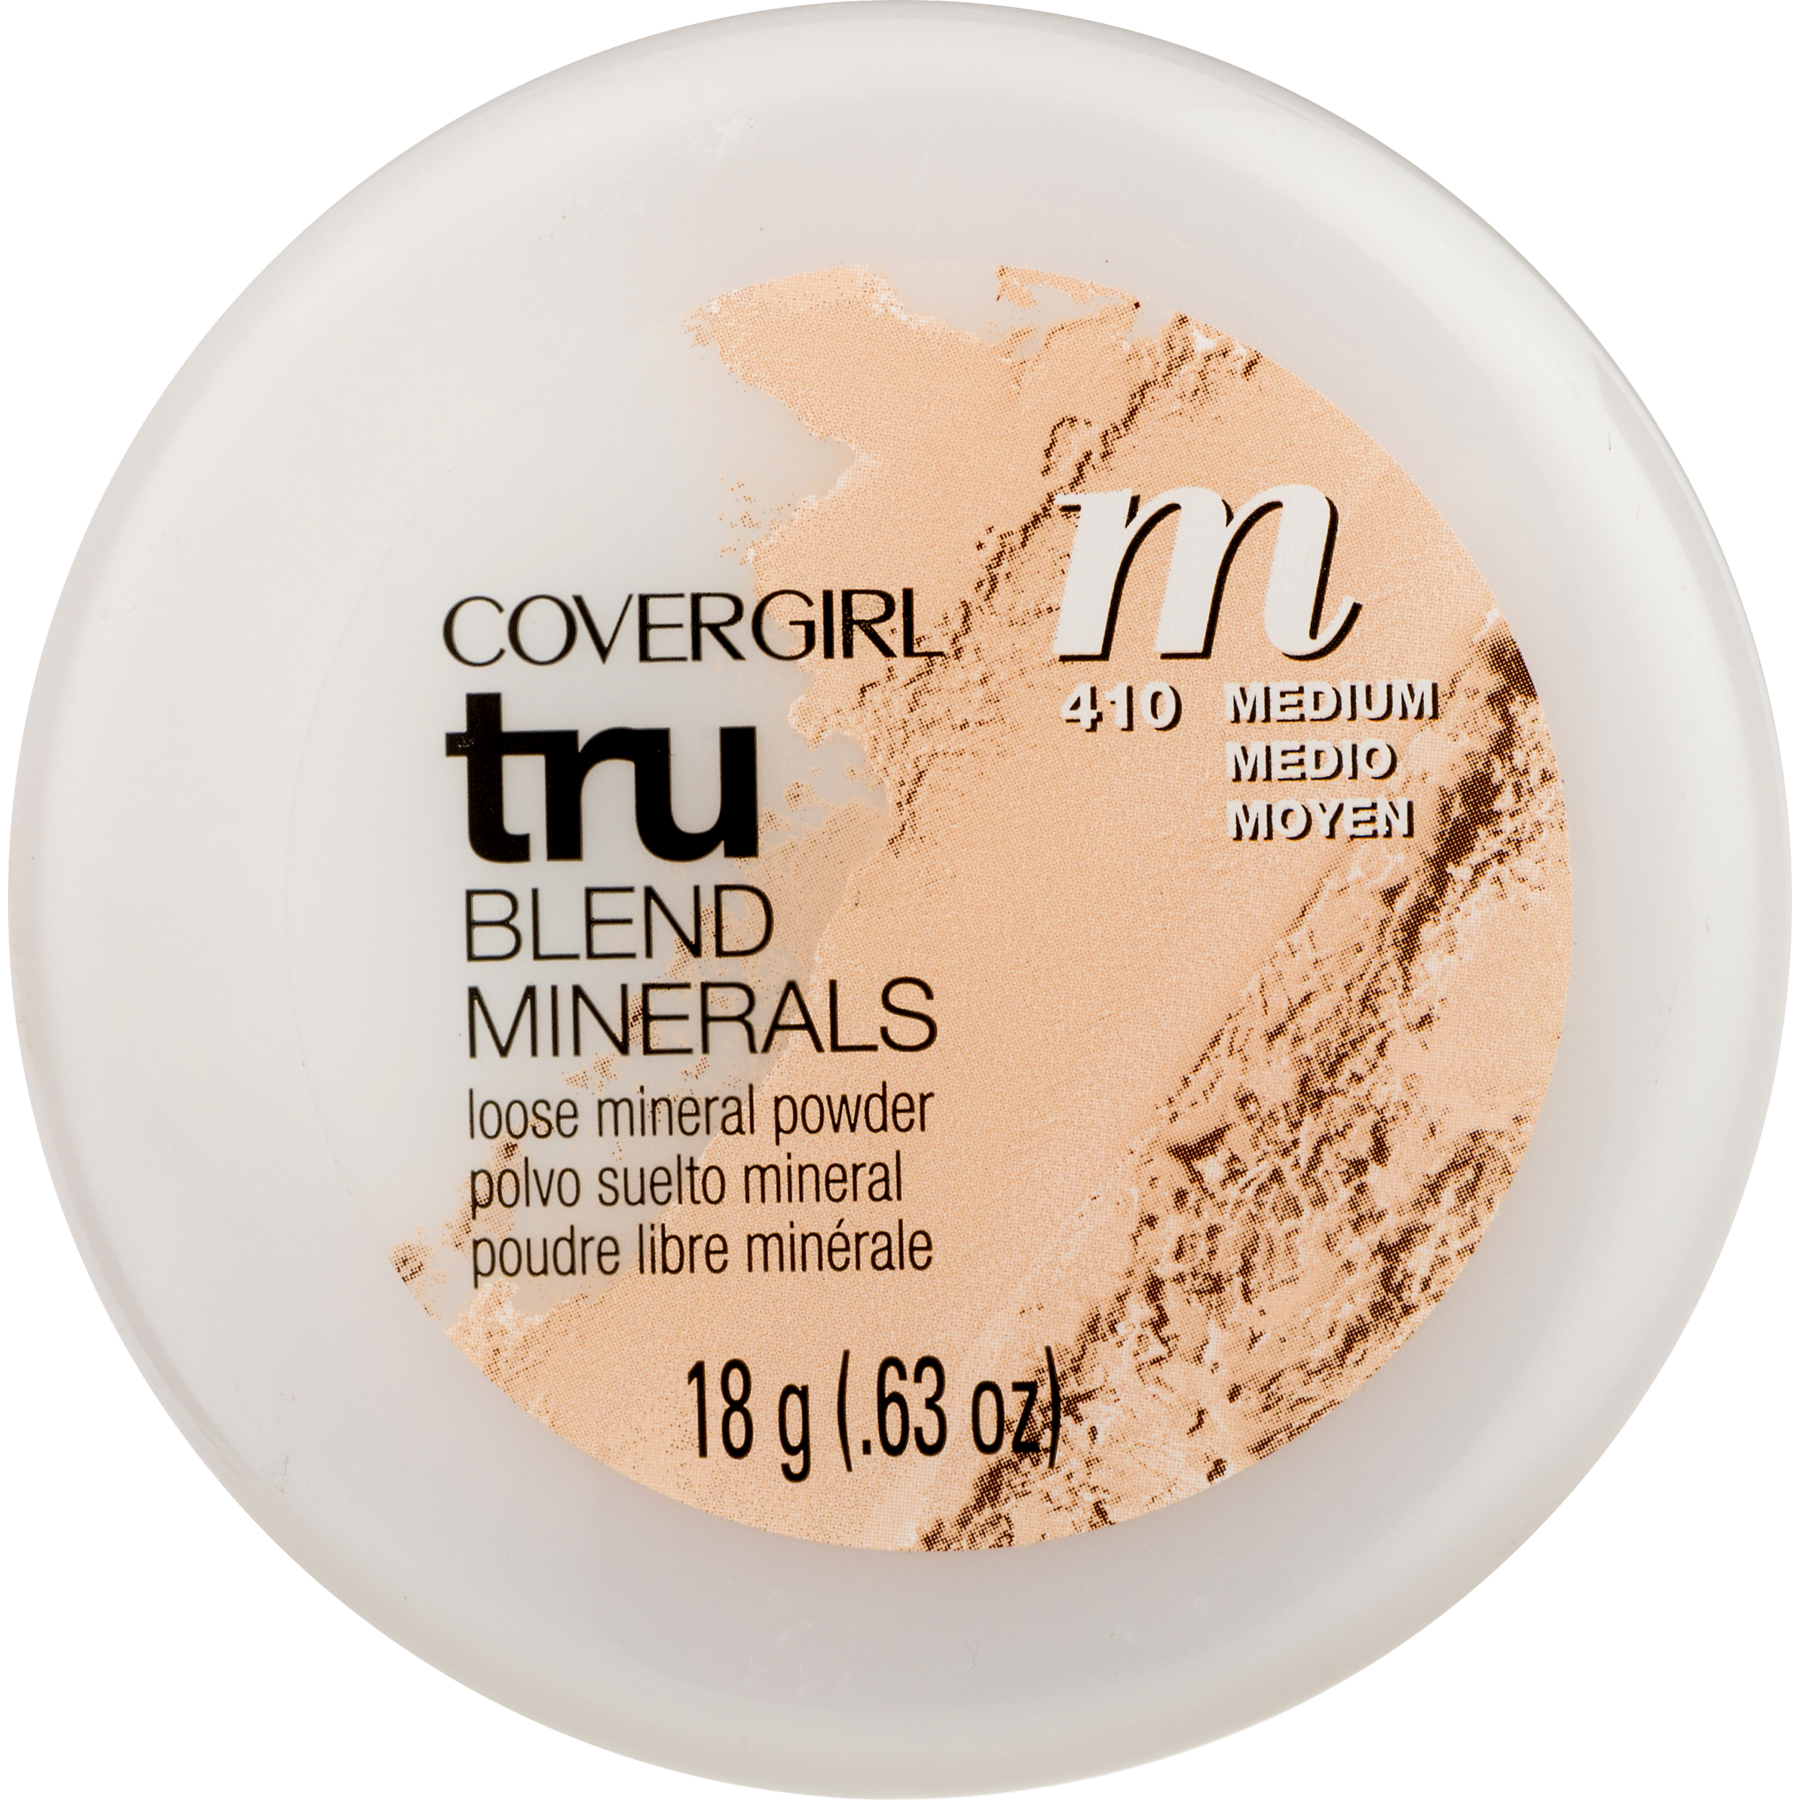 Covergirl trublend minerals loose powder translucent honey 420 covergirl trublend minerals loose powder translucent honey 420 walmart geenschuldenfo Image collections